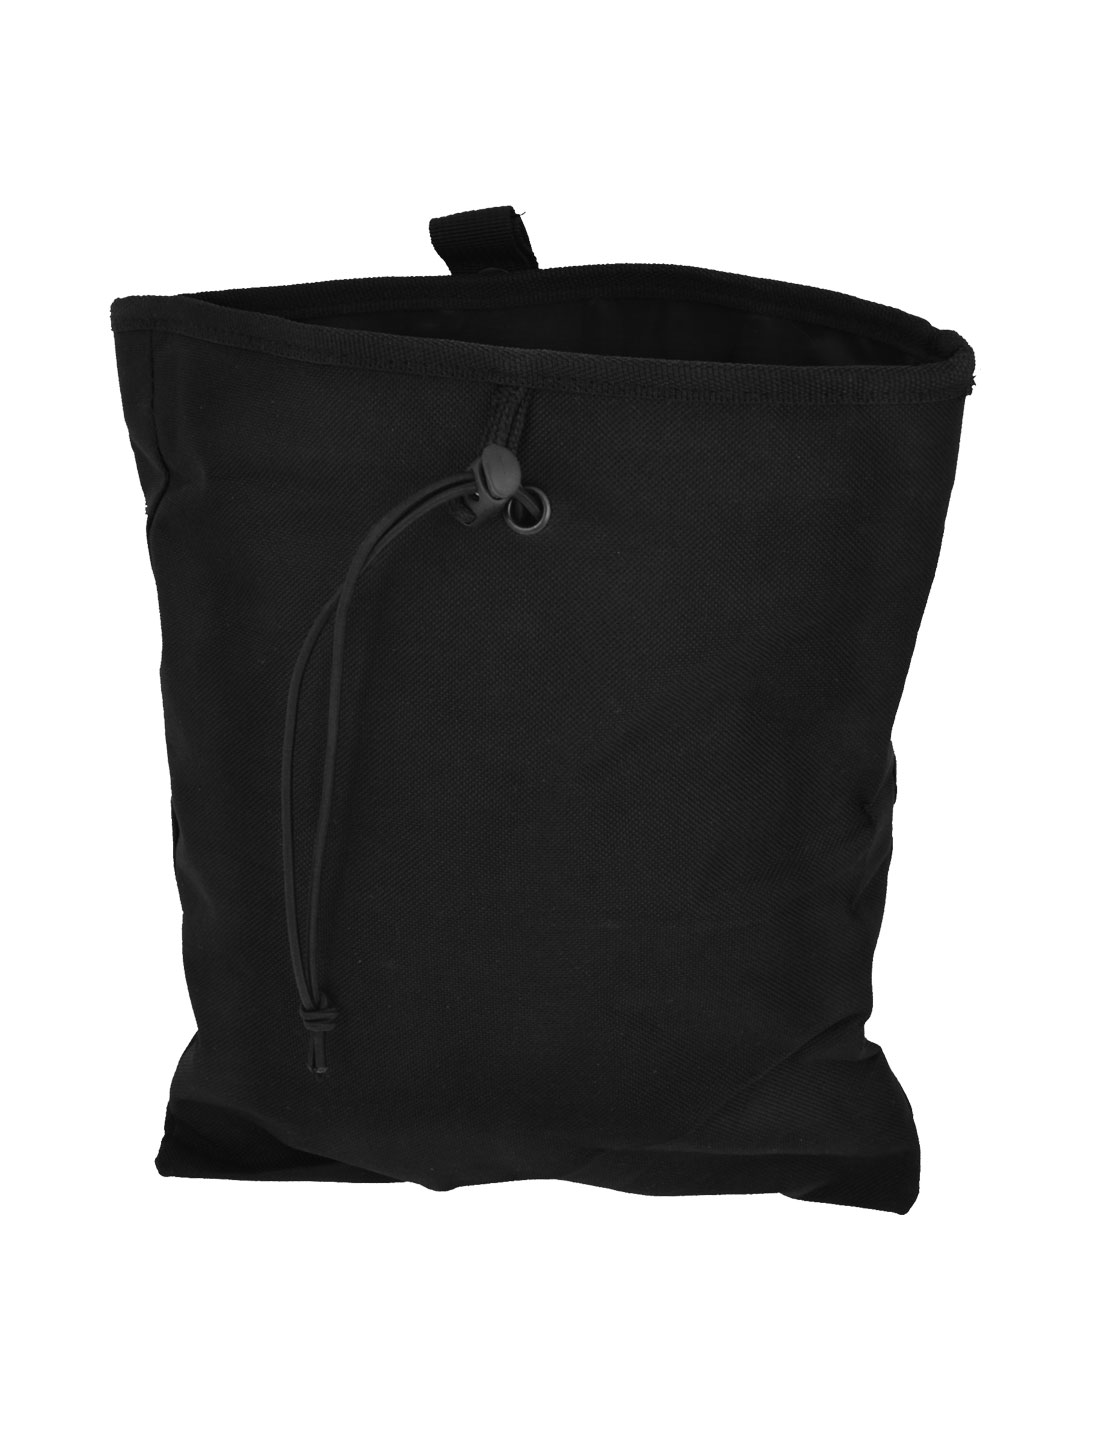 Hiking Drawstring Closure Rectangular Canvas Pouch Pack Bag Black